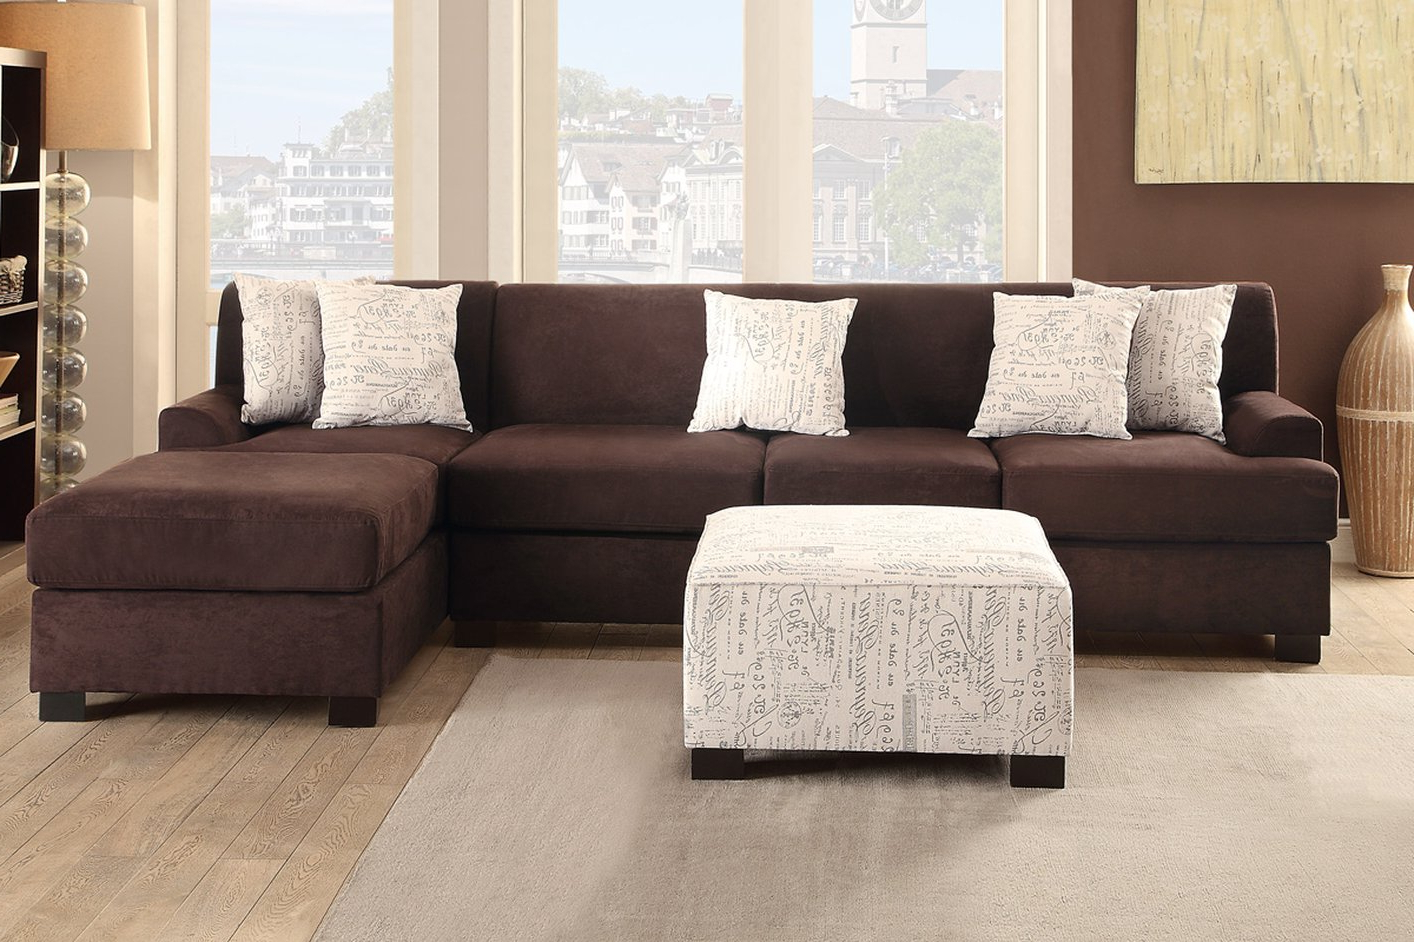 Top Sectional With 2 Chaise Lounges &yz44 – Roccommunity Pertaining To Famous Arrowmask 2 Piece Sectionals With Laf Chaise (View 19 of 20)